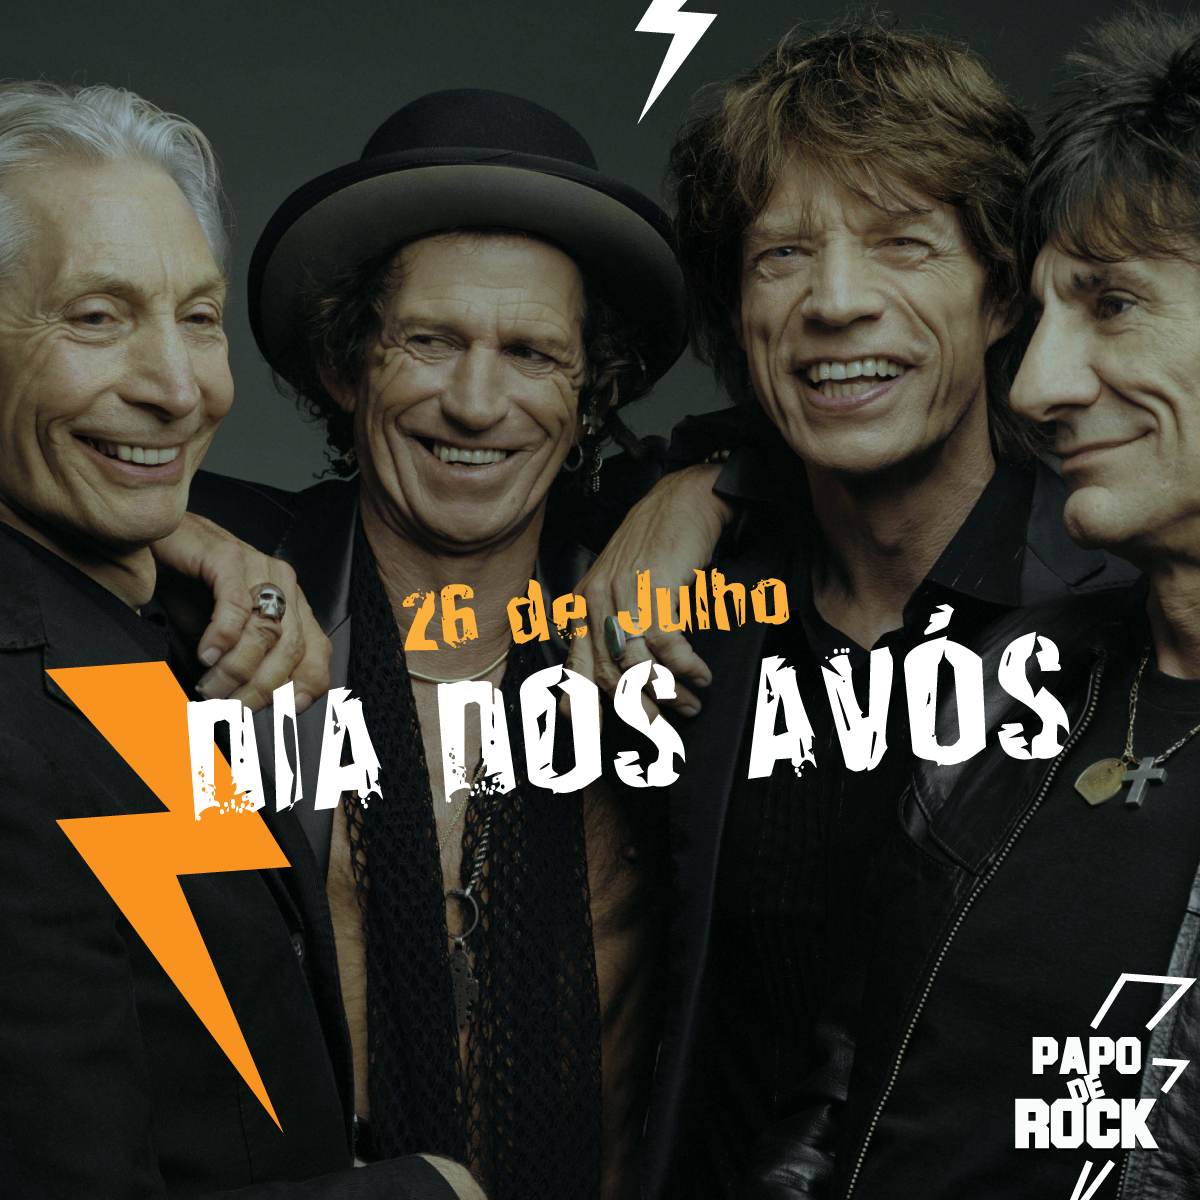 Avos-do-rock